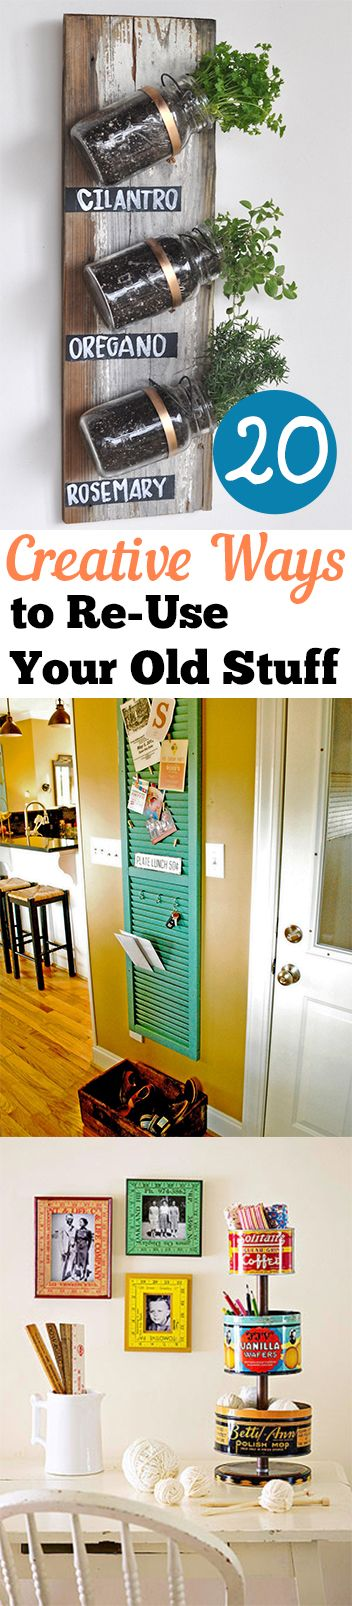 Repurpose projects, DIY repurpose projects, DIY home improvement, popular pin, easy DIY, recycling DIYs.